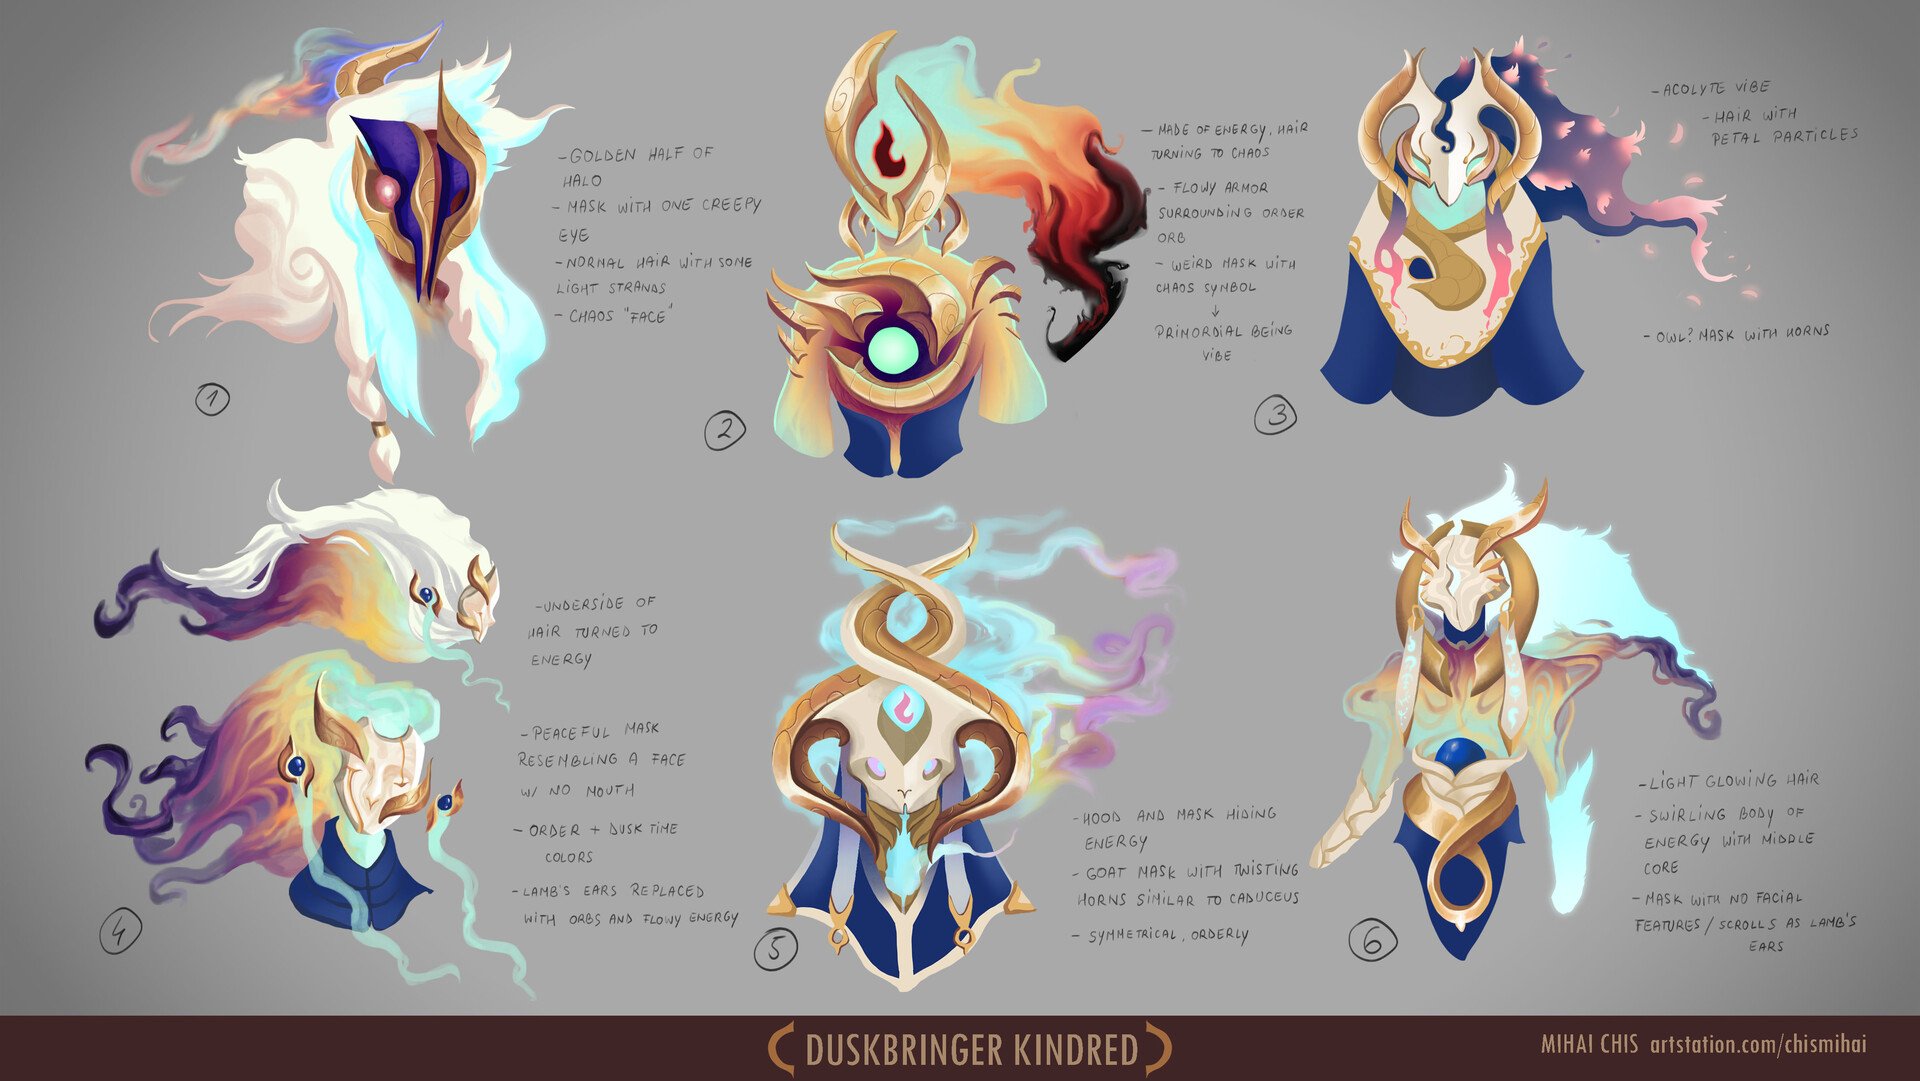 Different attempts at order lamb. My goal after finishing these was trying to make a design that felt like primordial order, a godly being that got split into two and still had remnants of chaos. Calming, symmetrical, mysterious, uncanny.